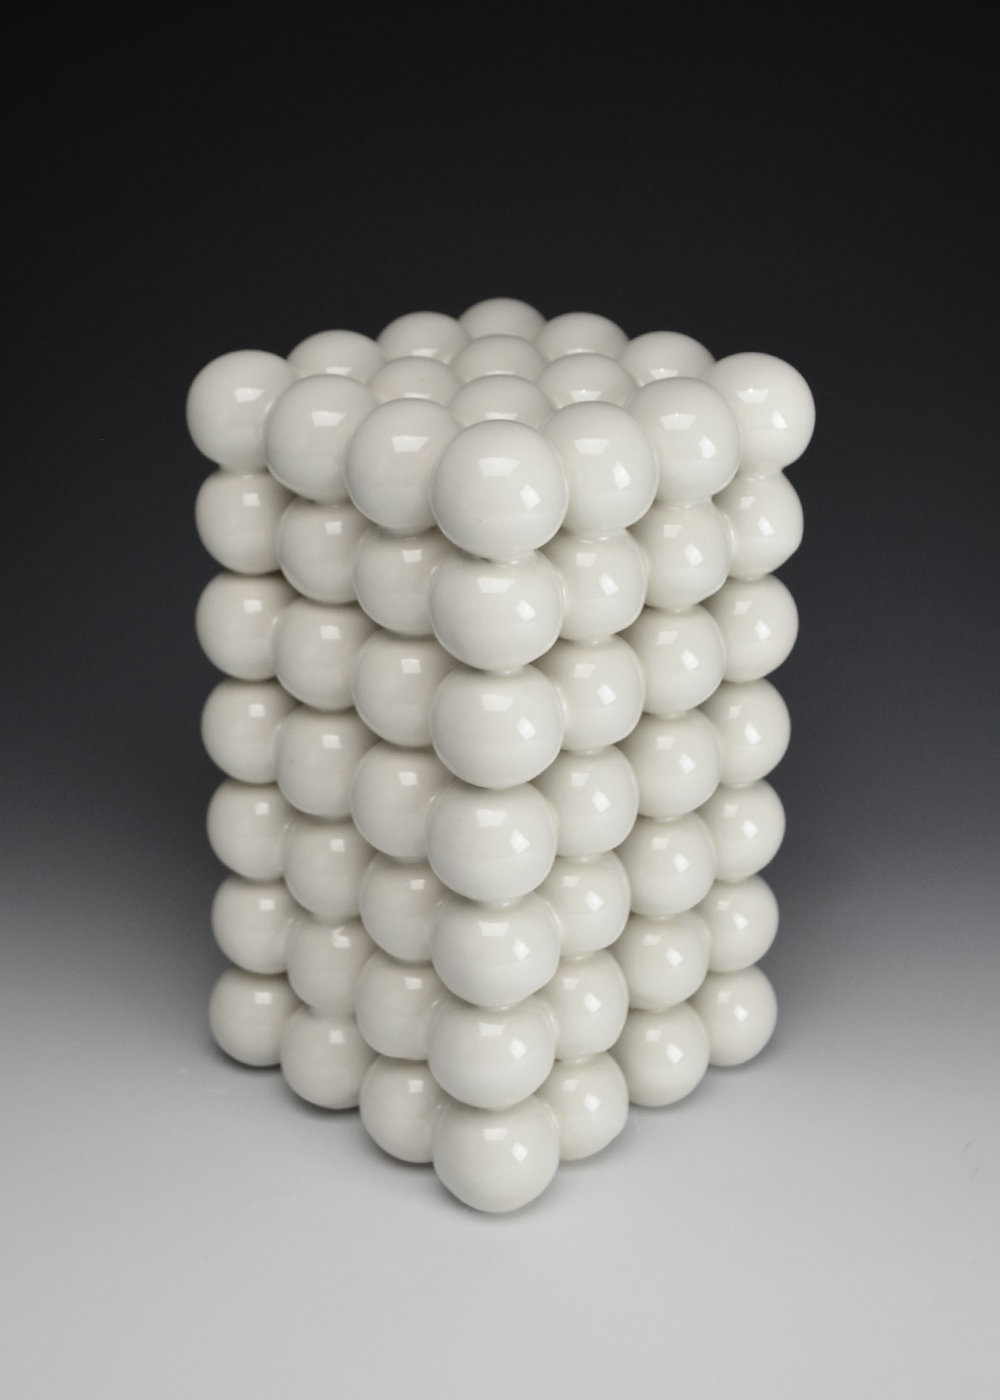 Ionic Series: Construction VII  |  9.5 x 5.5 x 5.5 inches  |  Porcelain, Glaze  |  2017